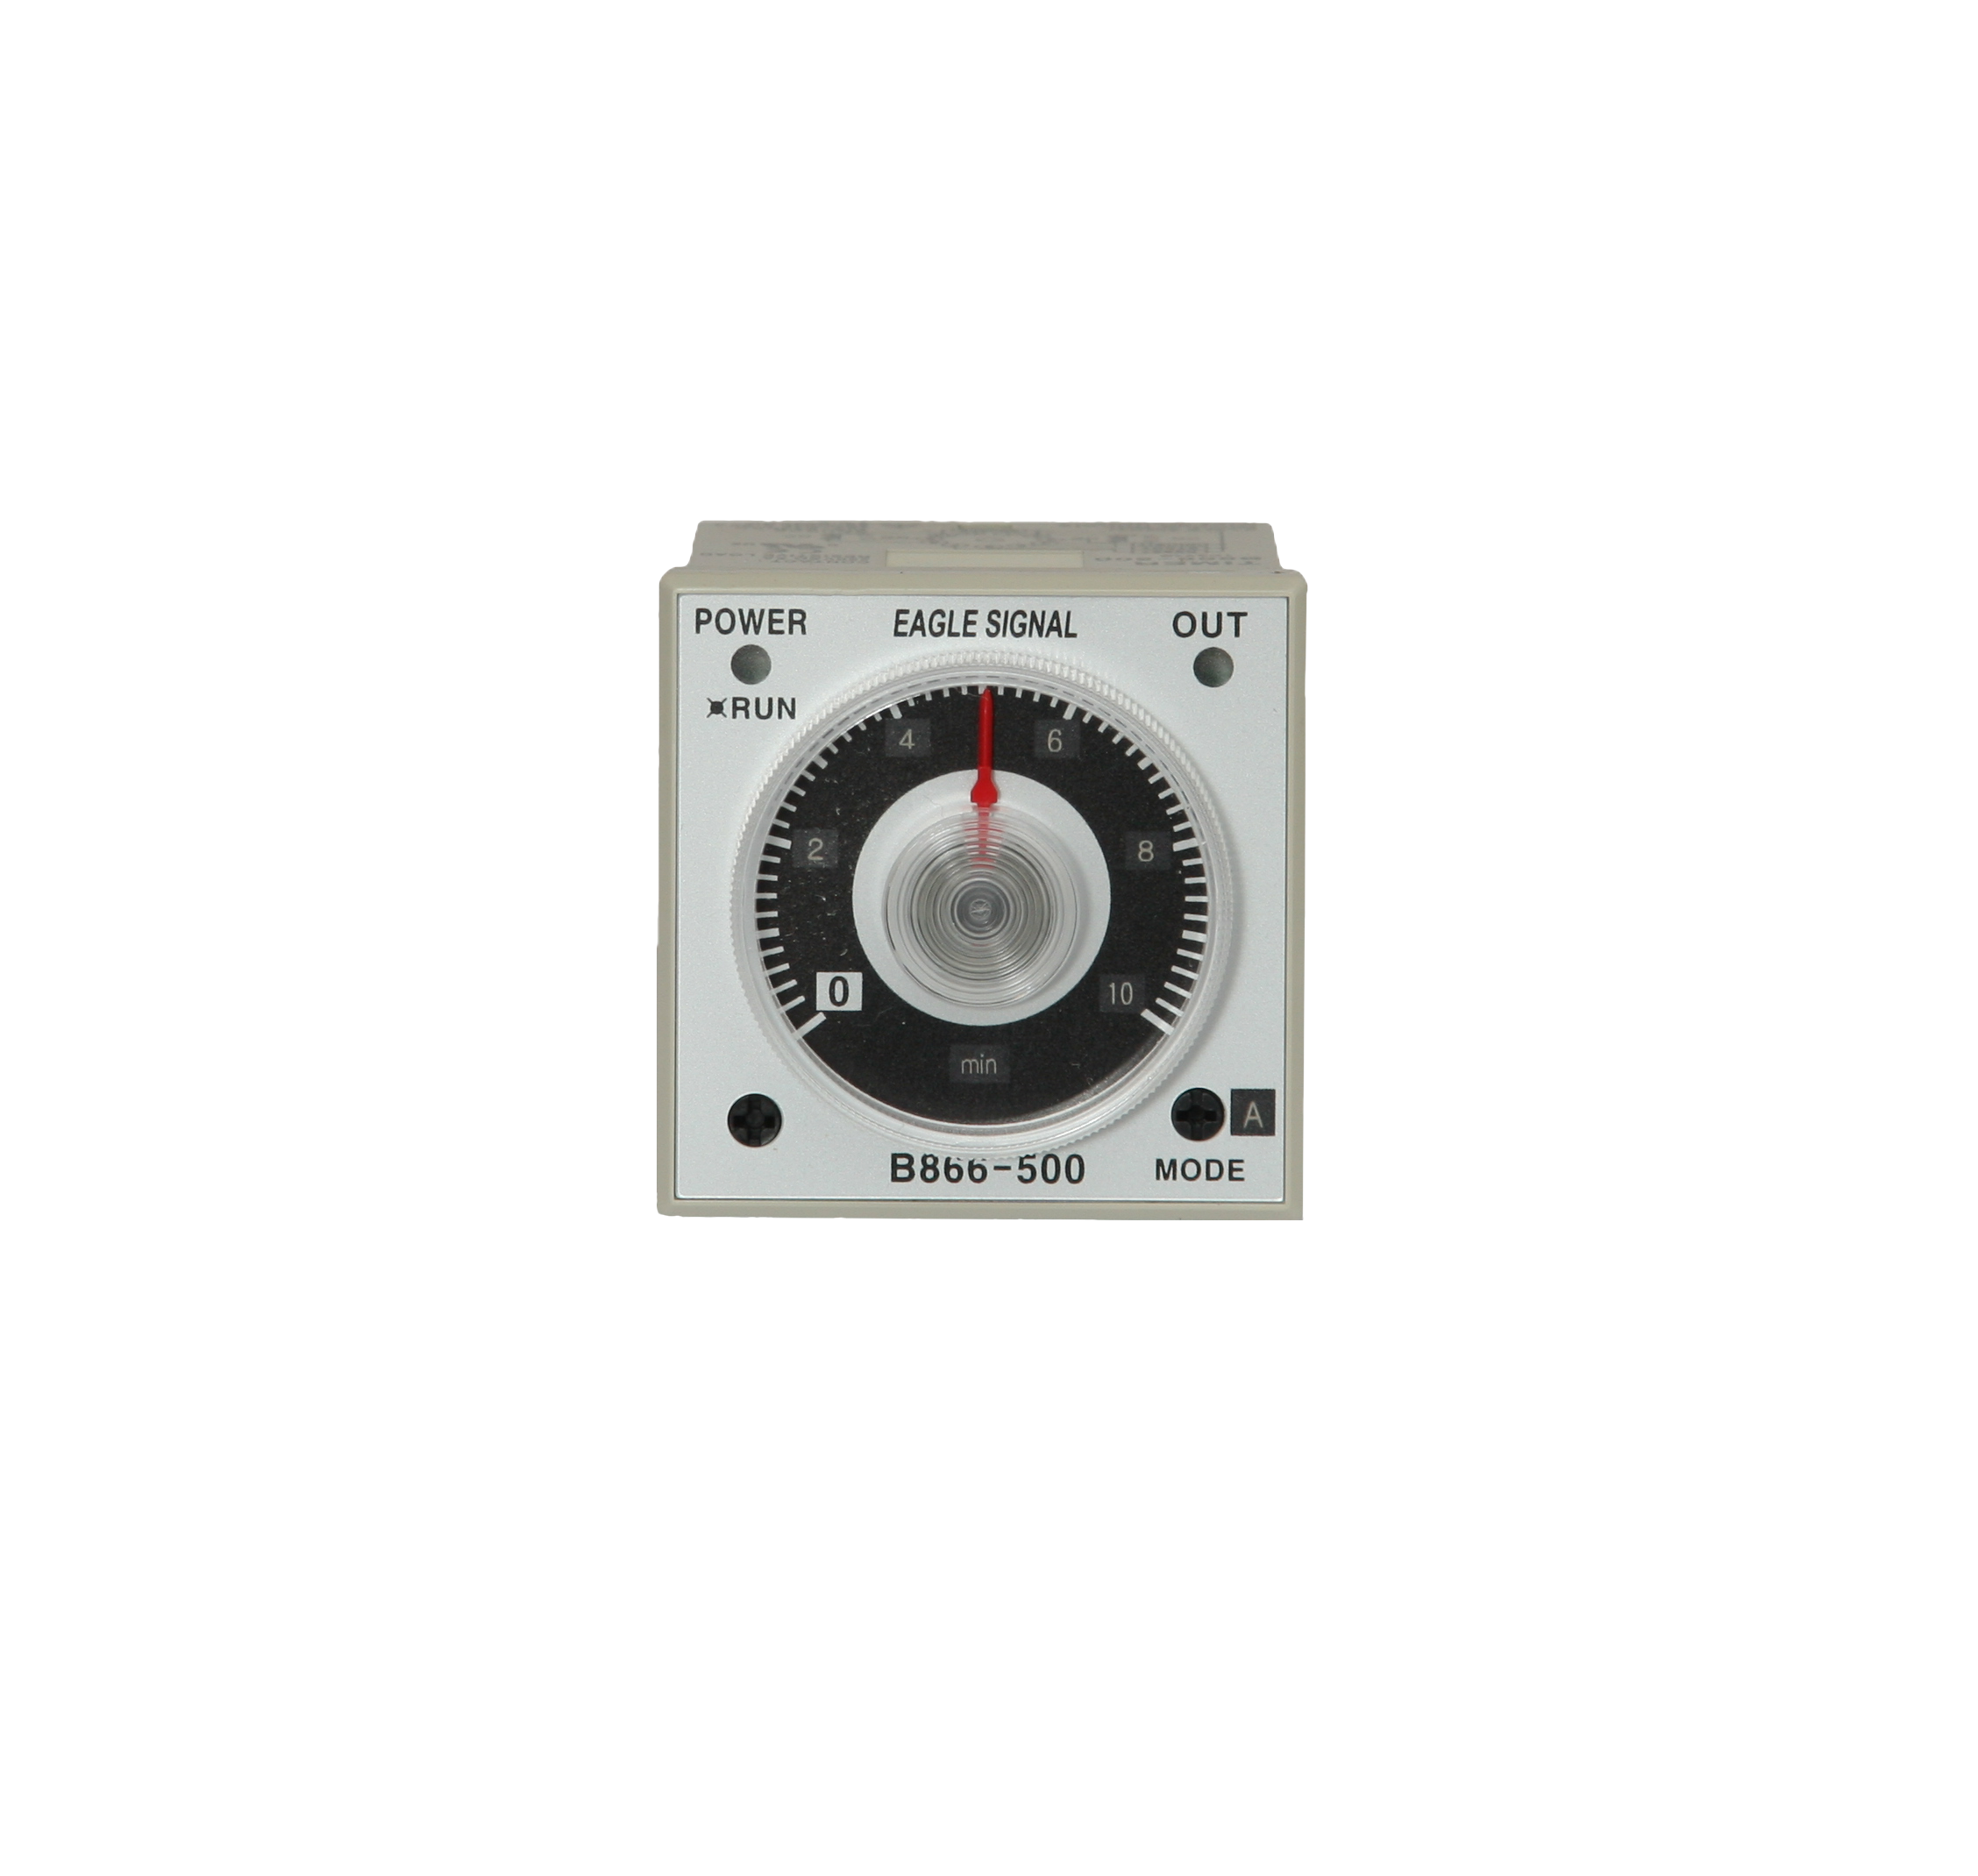 Eagle-Signal | Electronic Timers | B866 Multi-Function Analog Timer